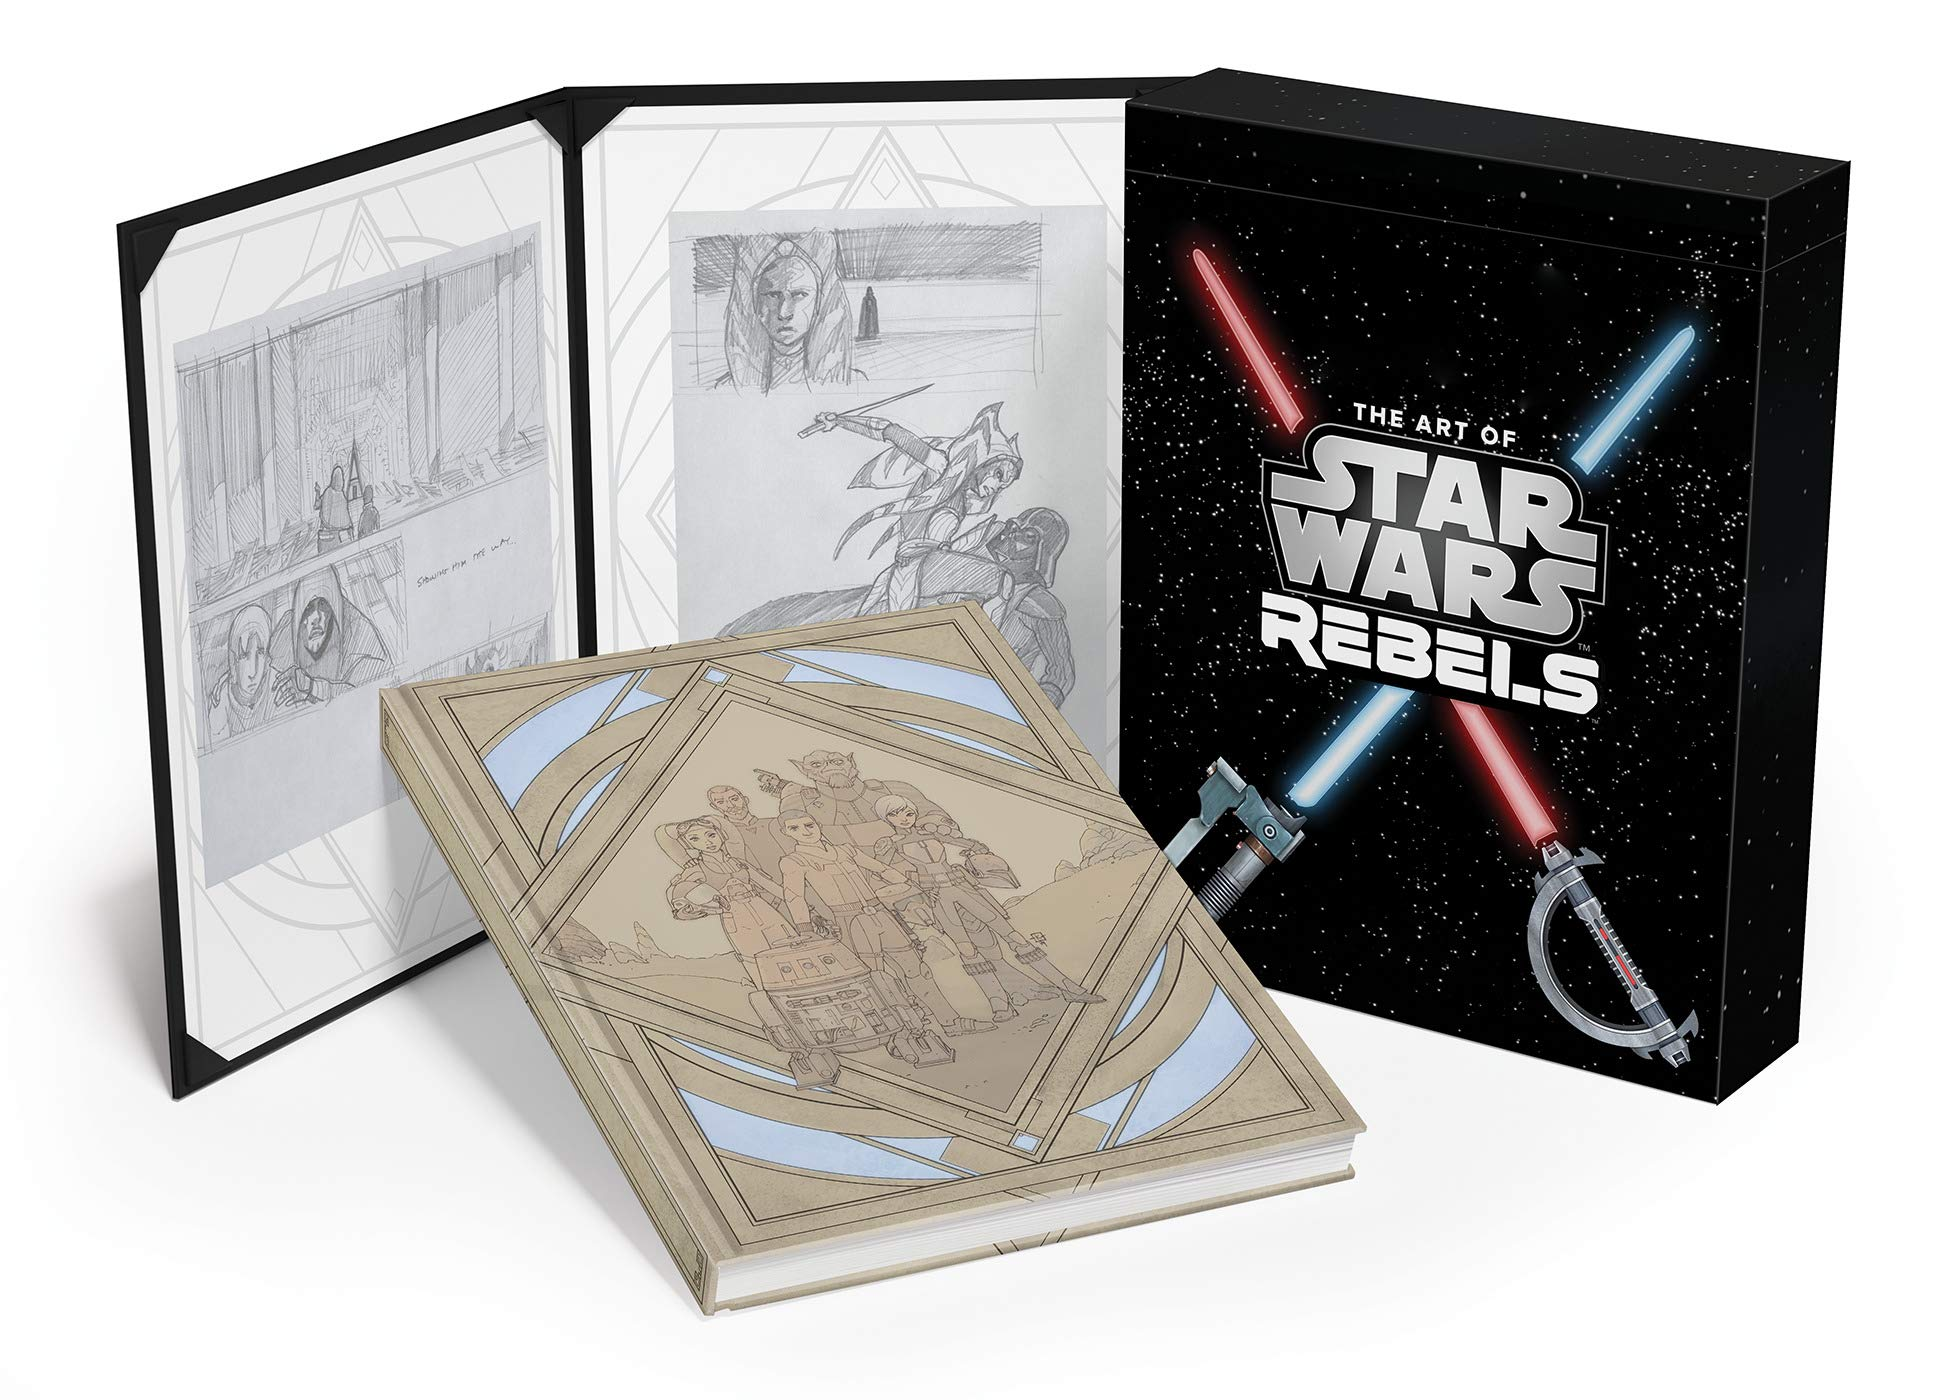 The Art of Star Wars Rebels Limited Edition by Dark Horse Books